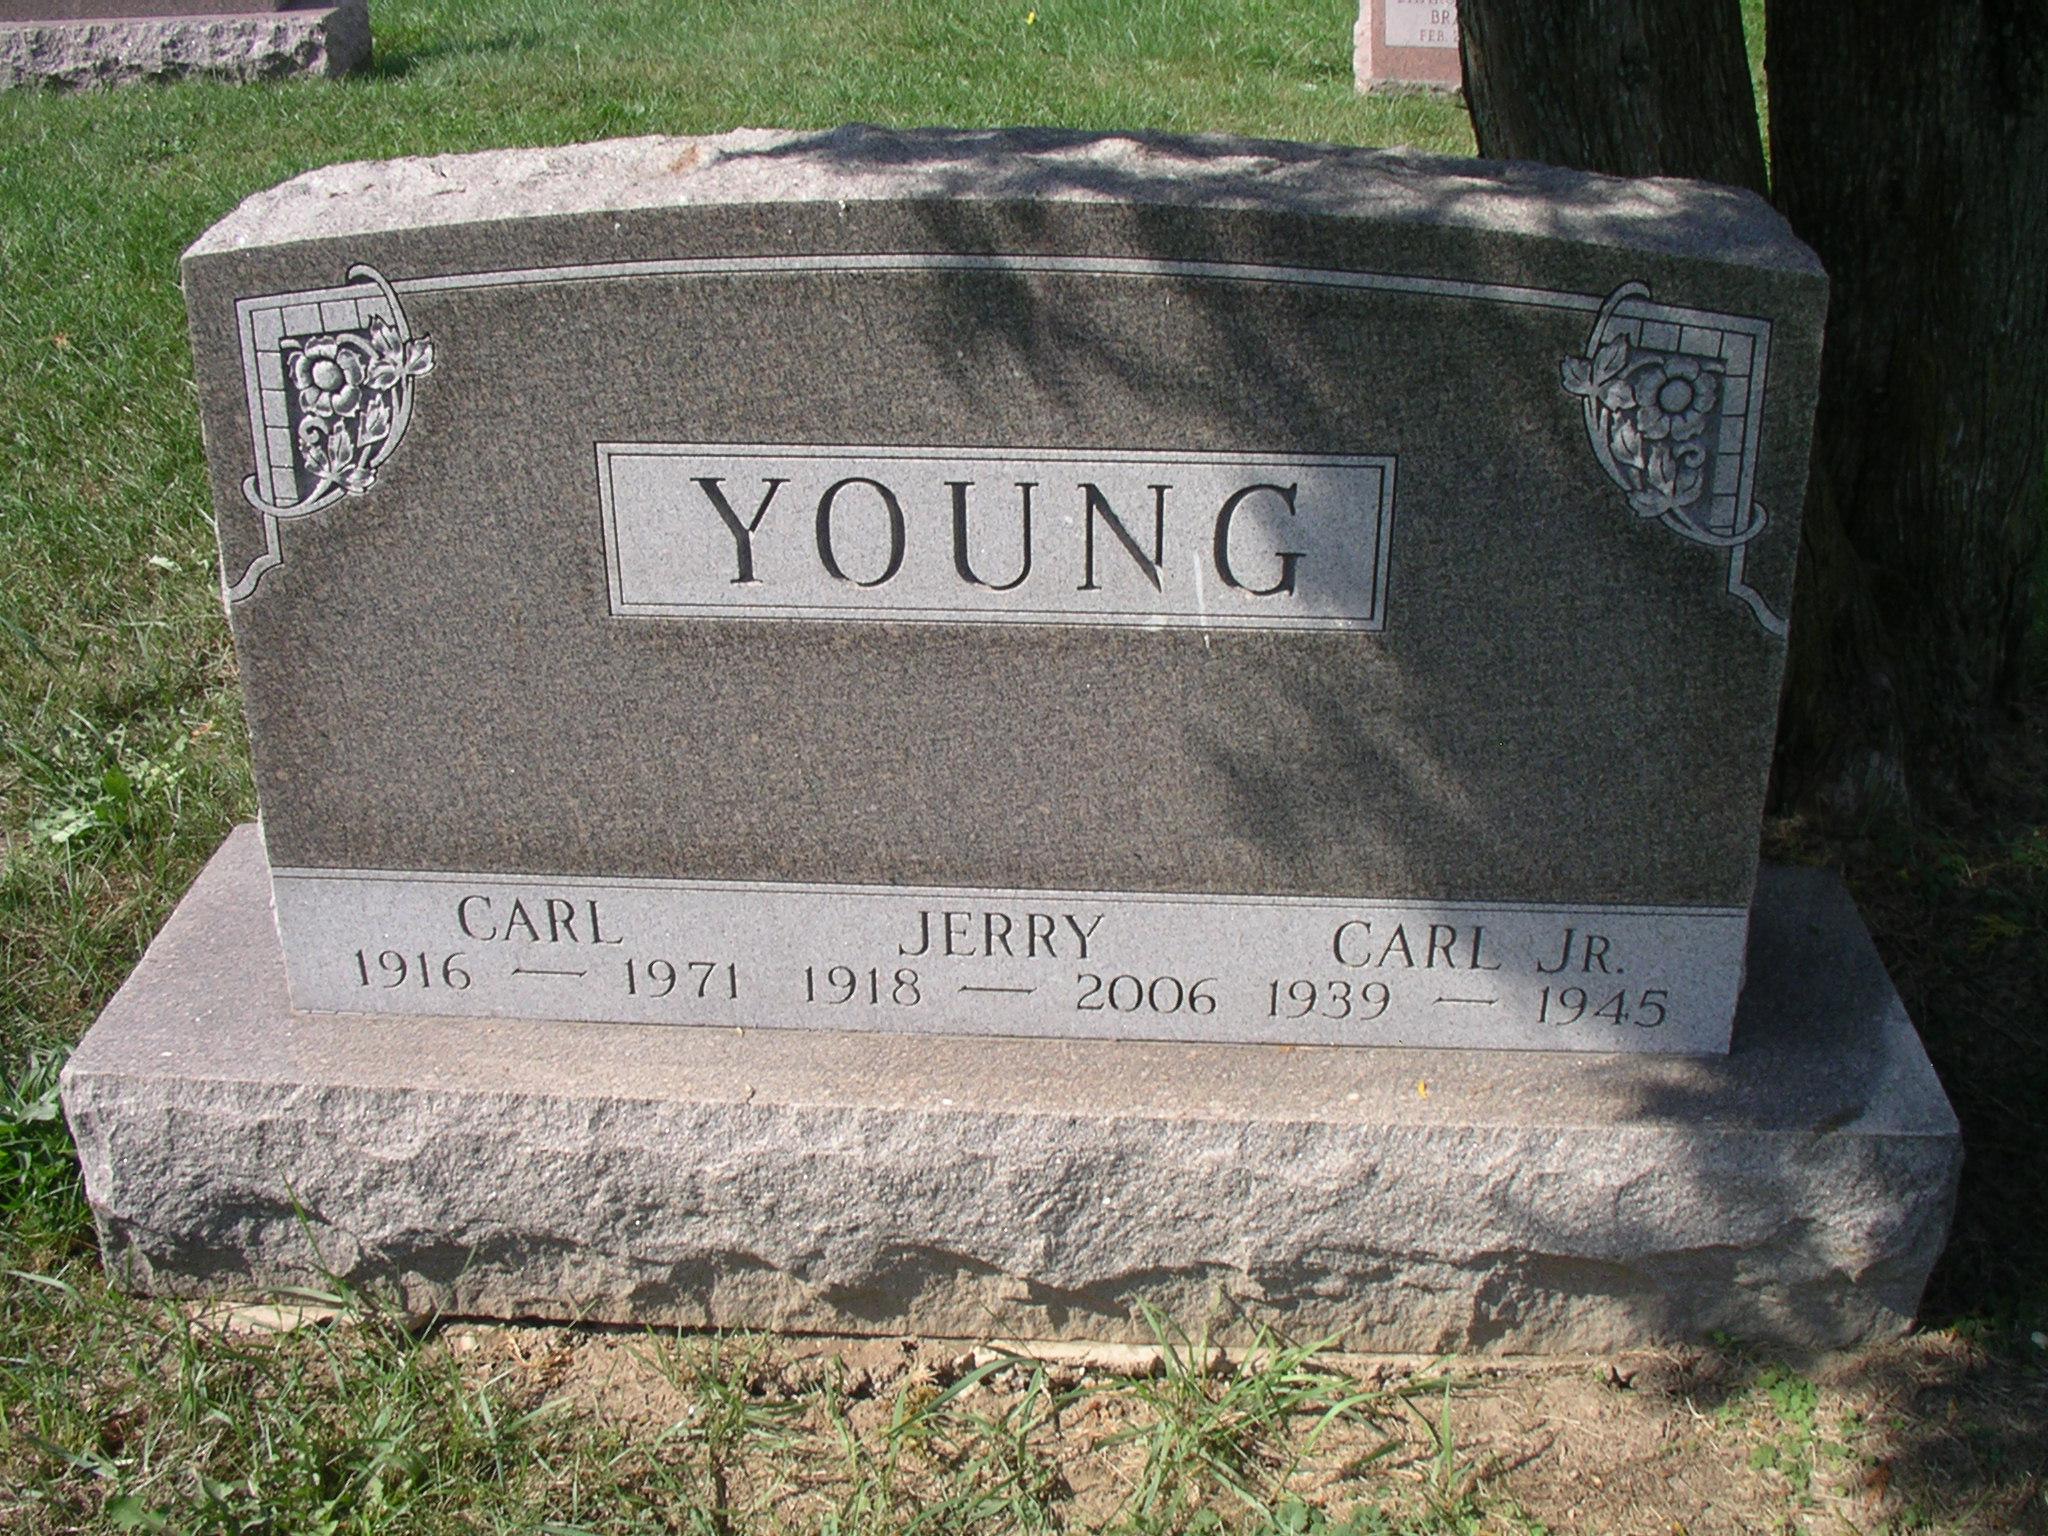 Carl Clifford Young